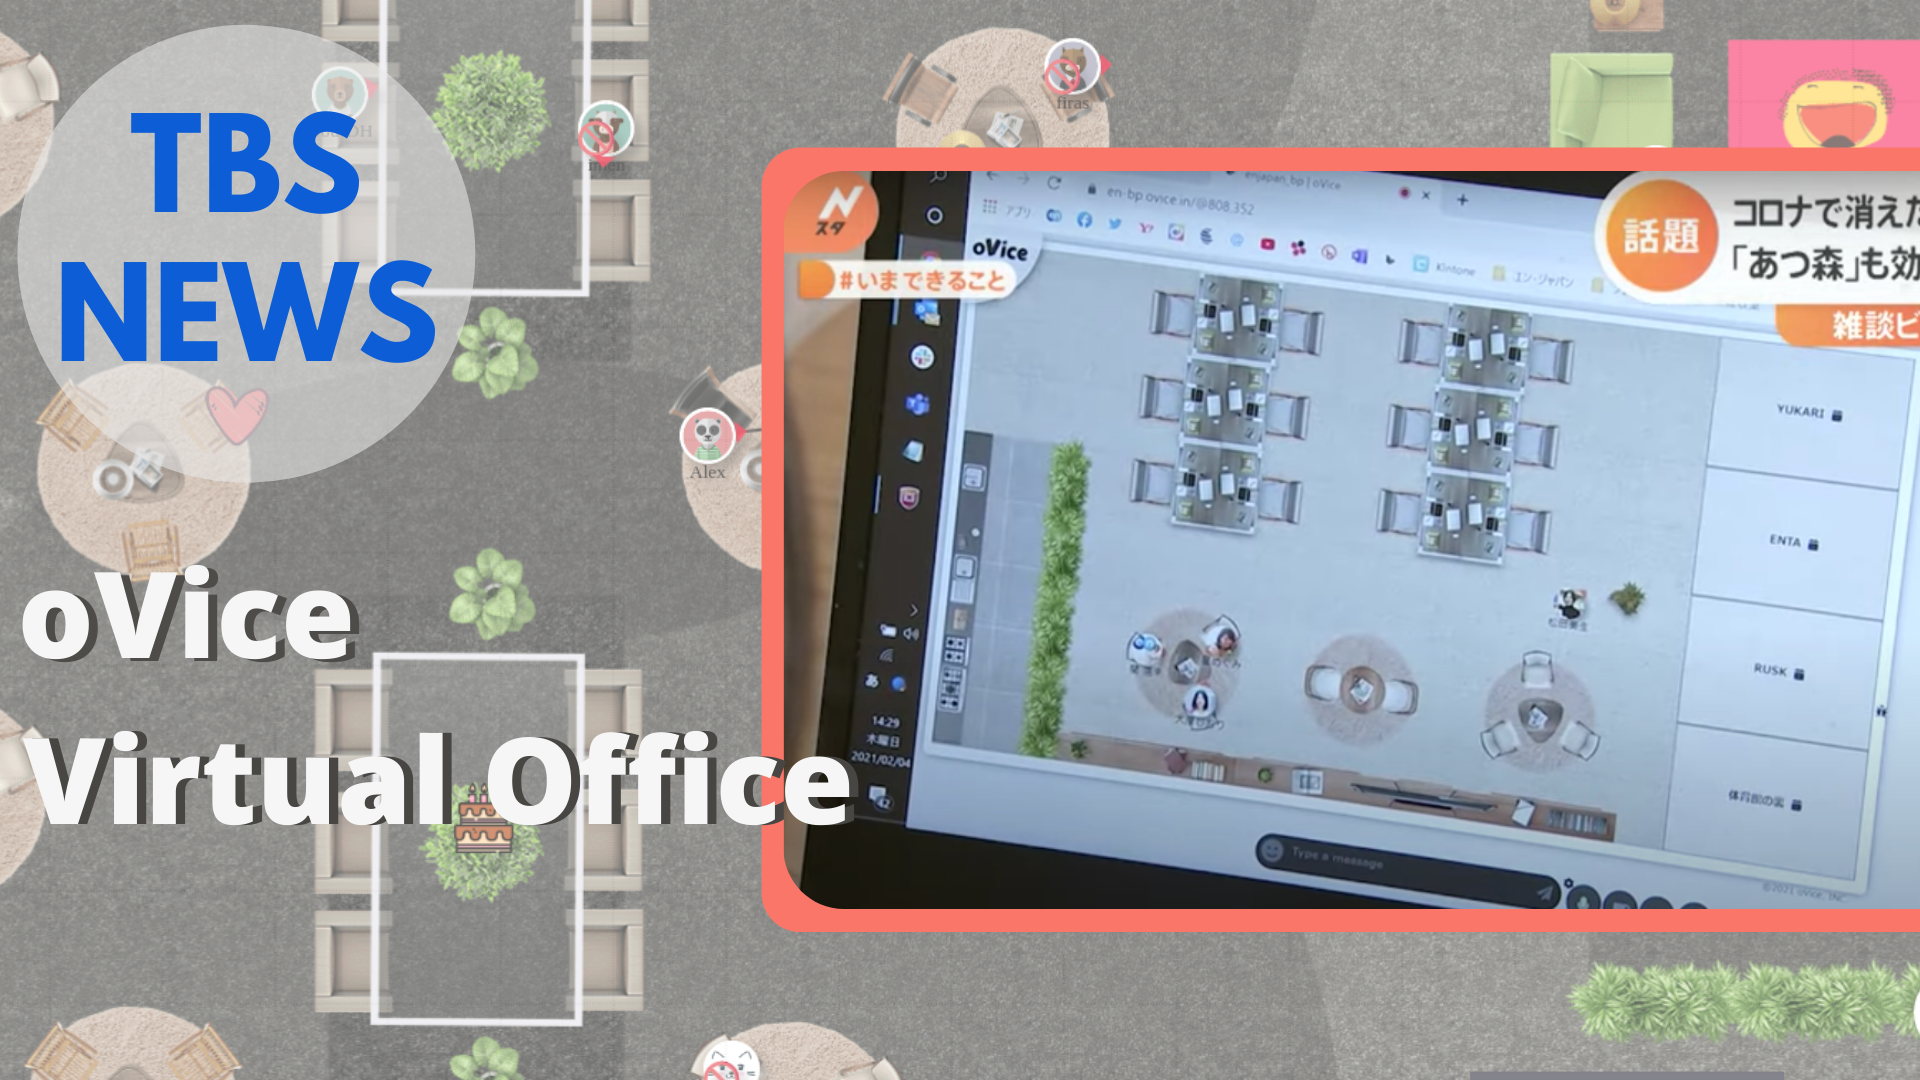 """oVice as a Remote Working Solution Featured on TBS's """"Nsta"""""""